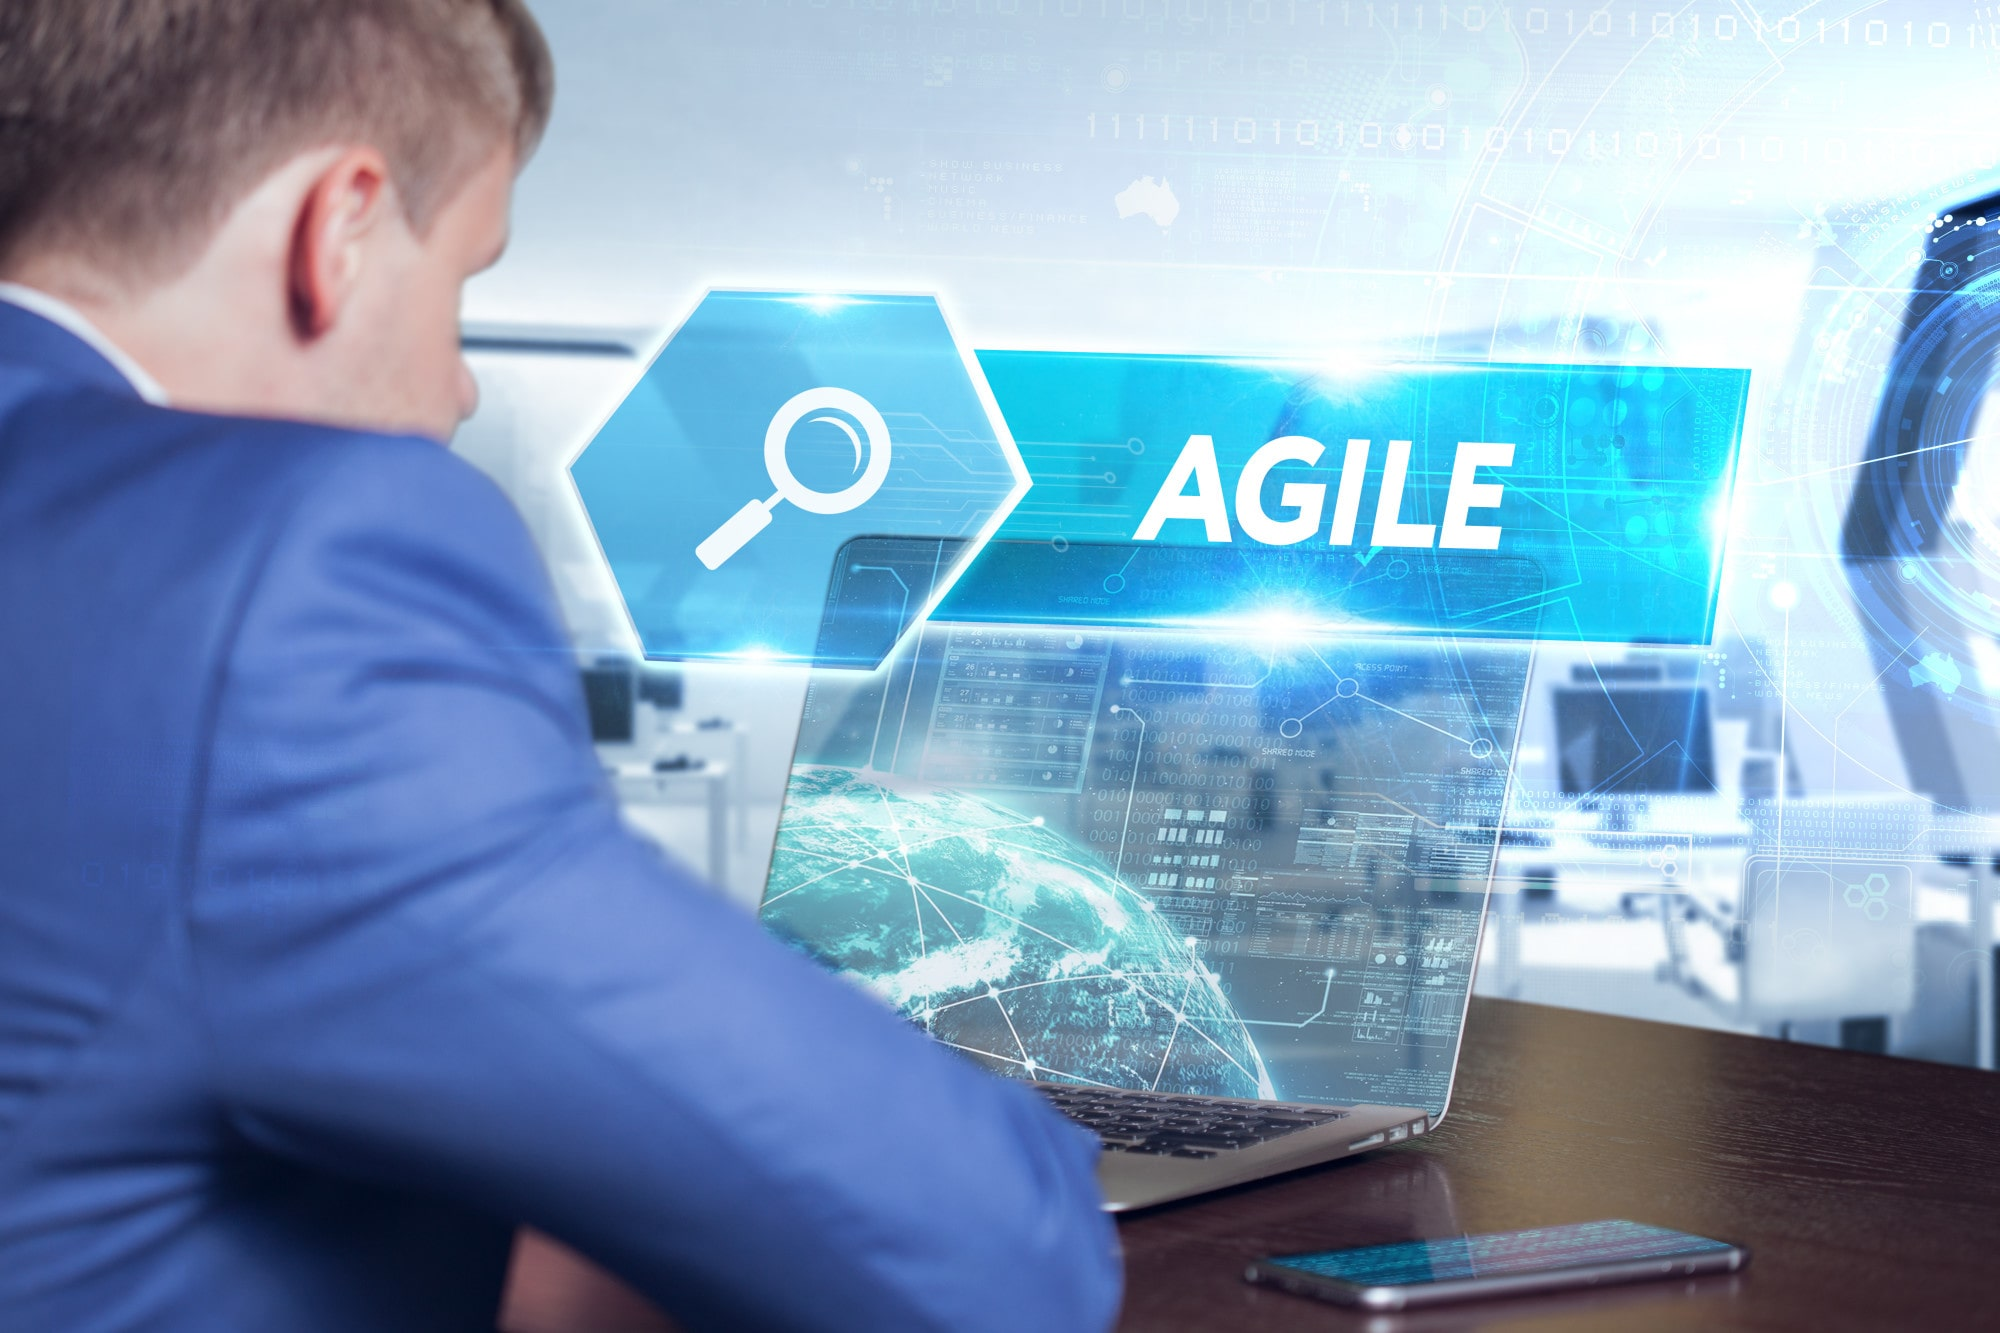 What Defines the Agile Center? The Top 10 Agile Principles and Practices